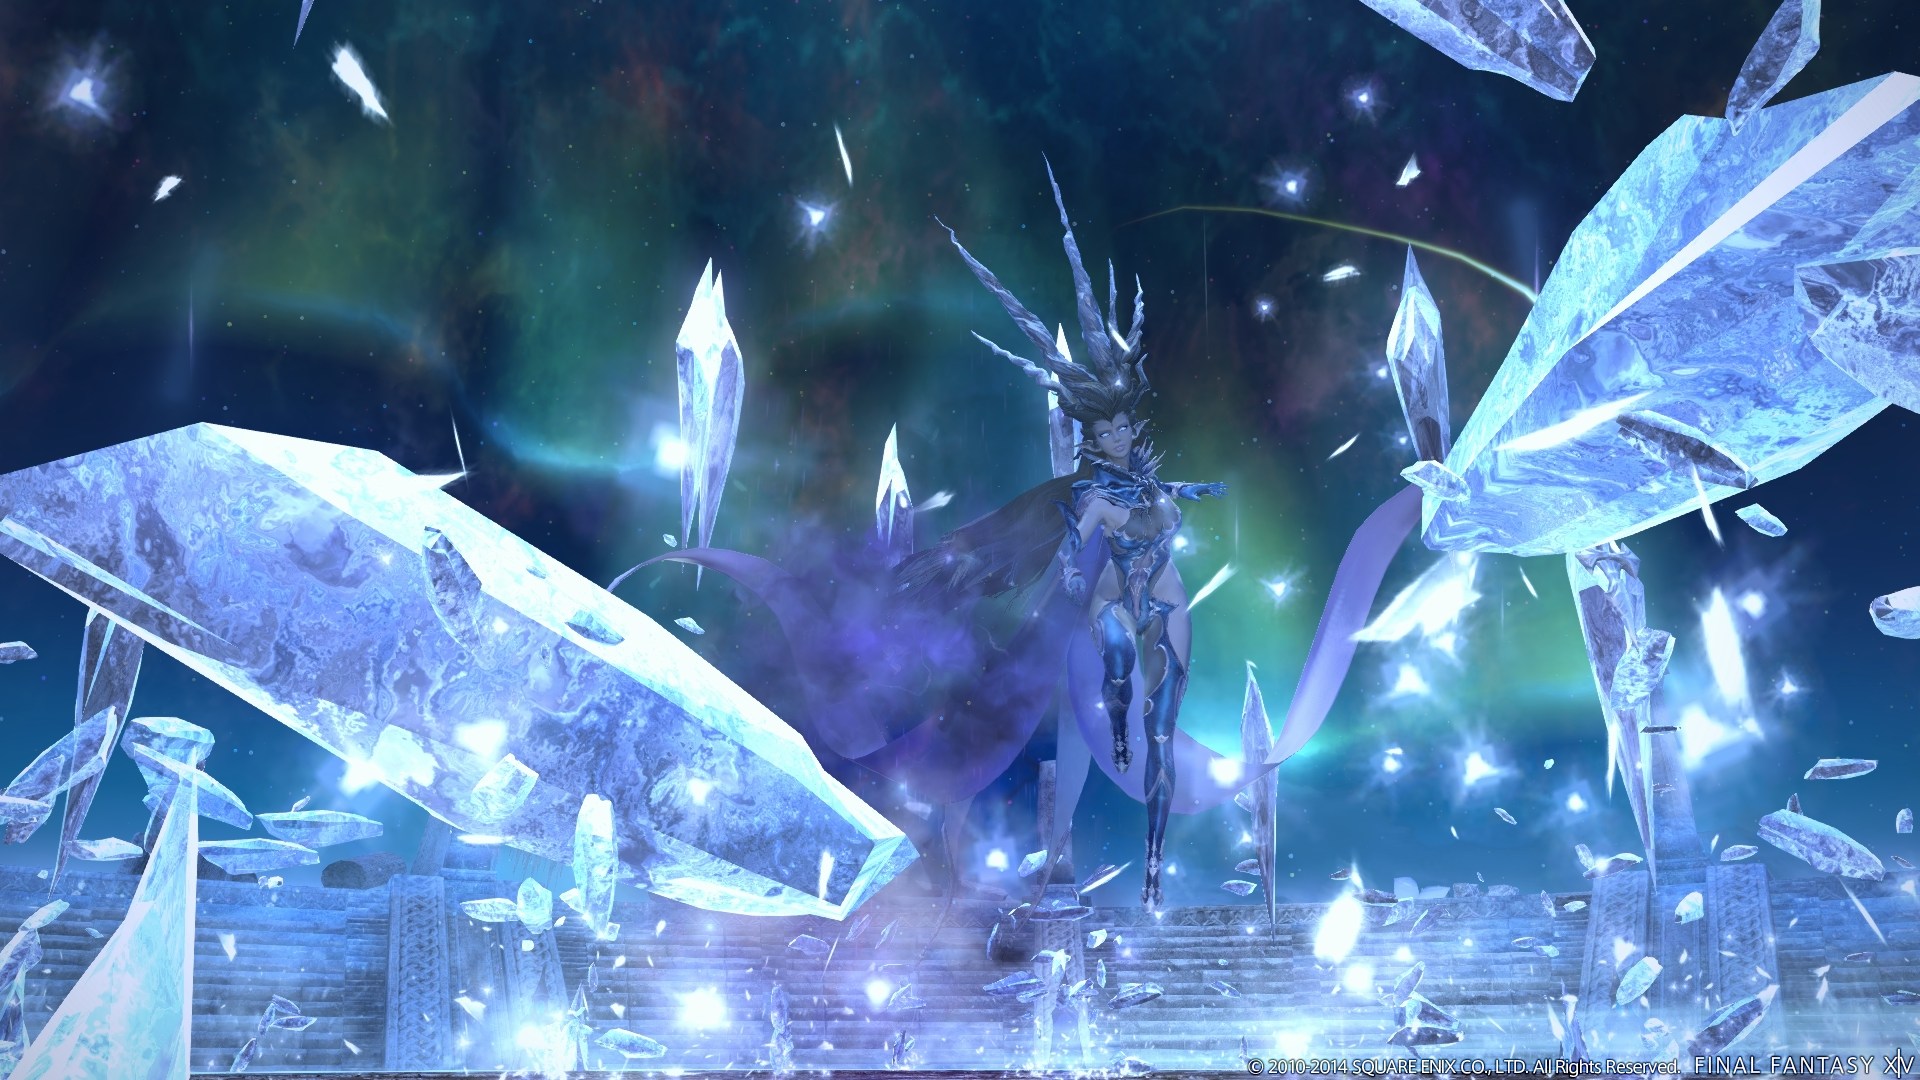 Final Fantasy 14's new content update is out today, time to tackle unfinished business